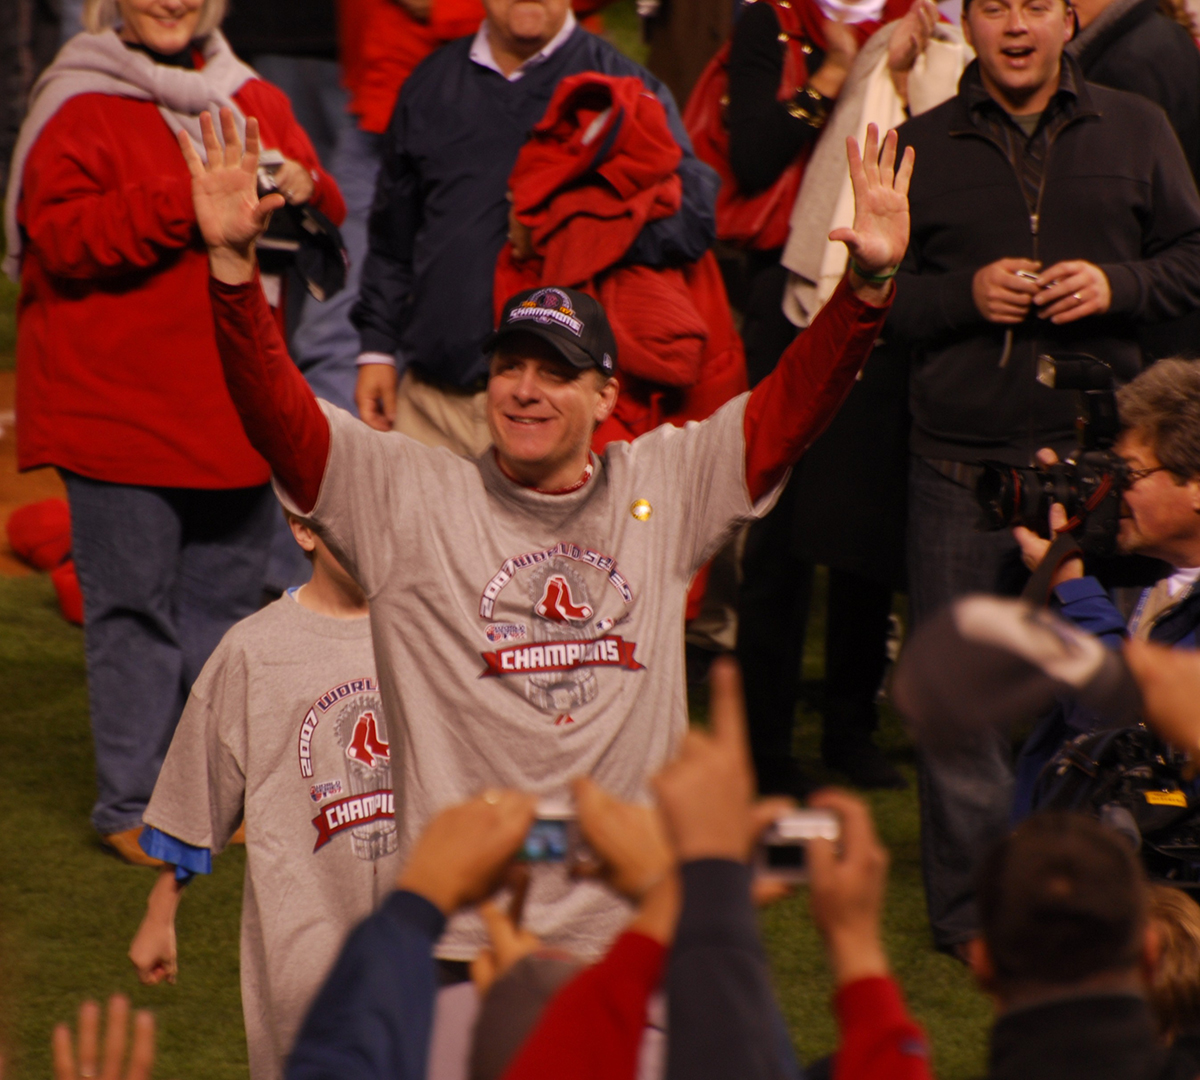 Schill Greets the Crowd by Eric Kilby on Flickr/Creative Commons